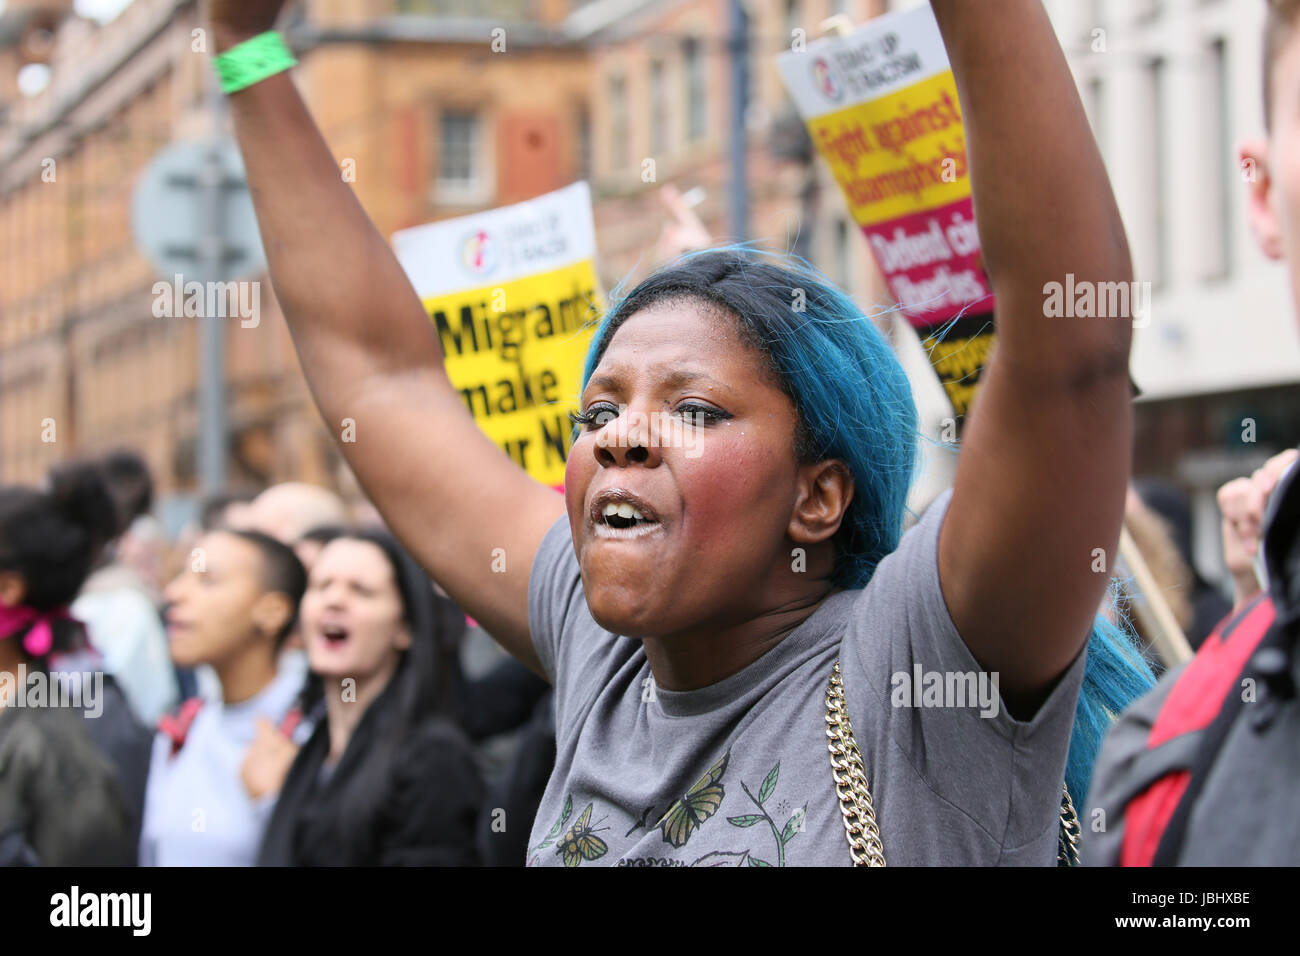 Manchester, UK. 11th June, 2017. Anti racist protester in Manchester, 11th June, 2017 (C)Barbara Cook/Alamy Live - Stock Image